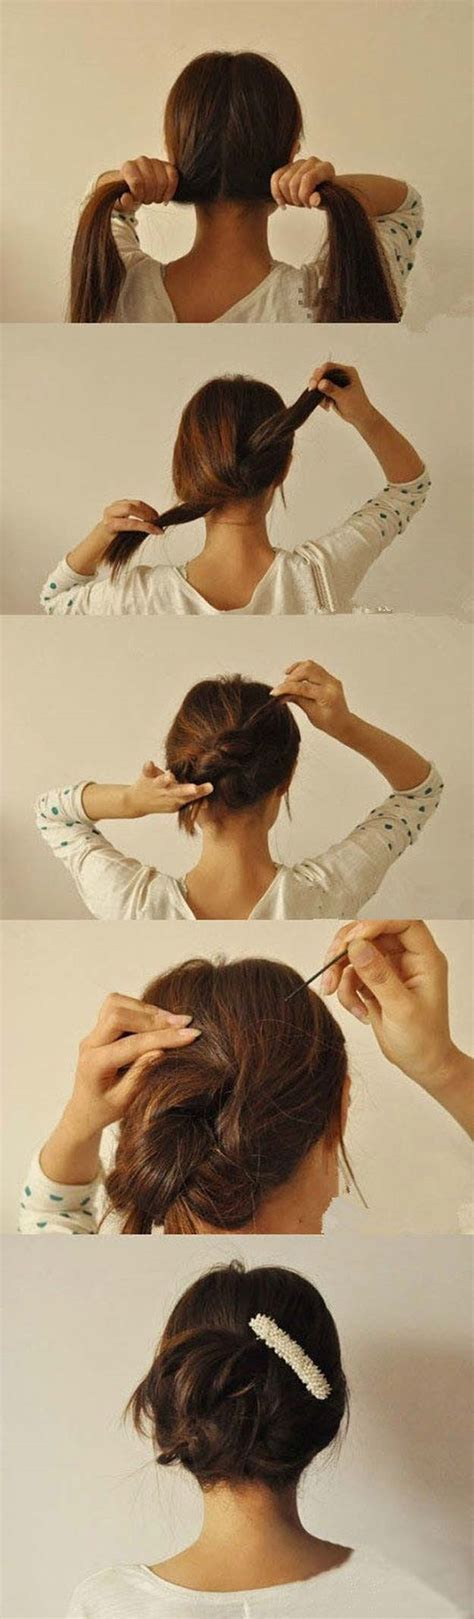 diy up hairstyles 36 best hairstyles for long hair diy projects for teens